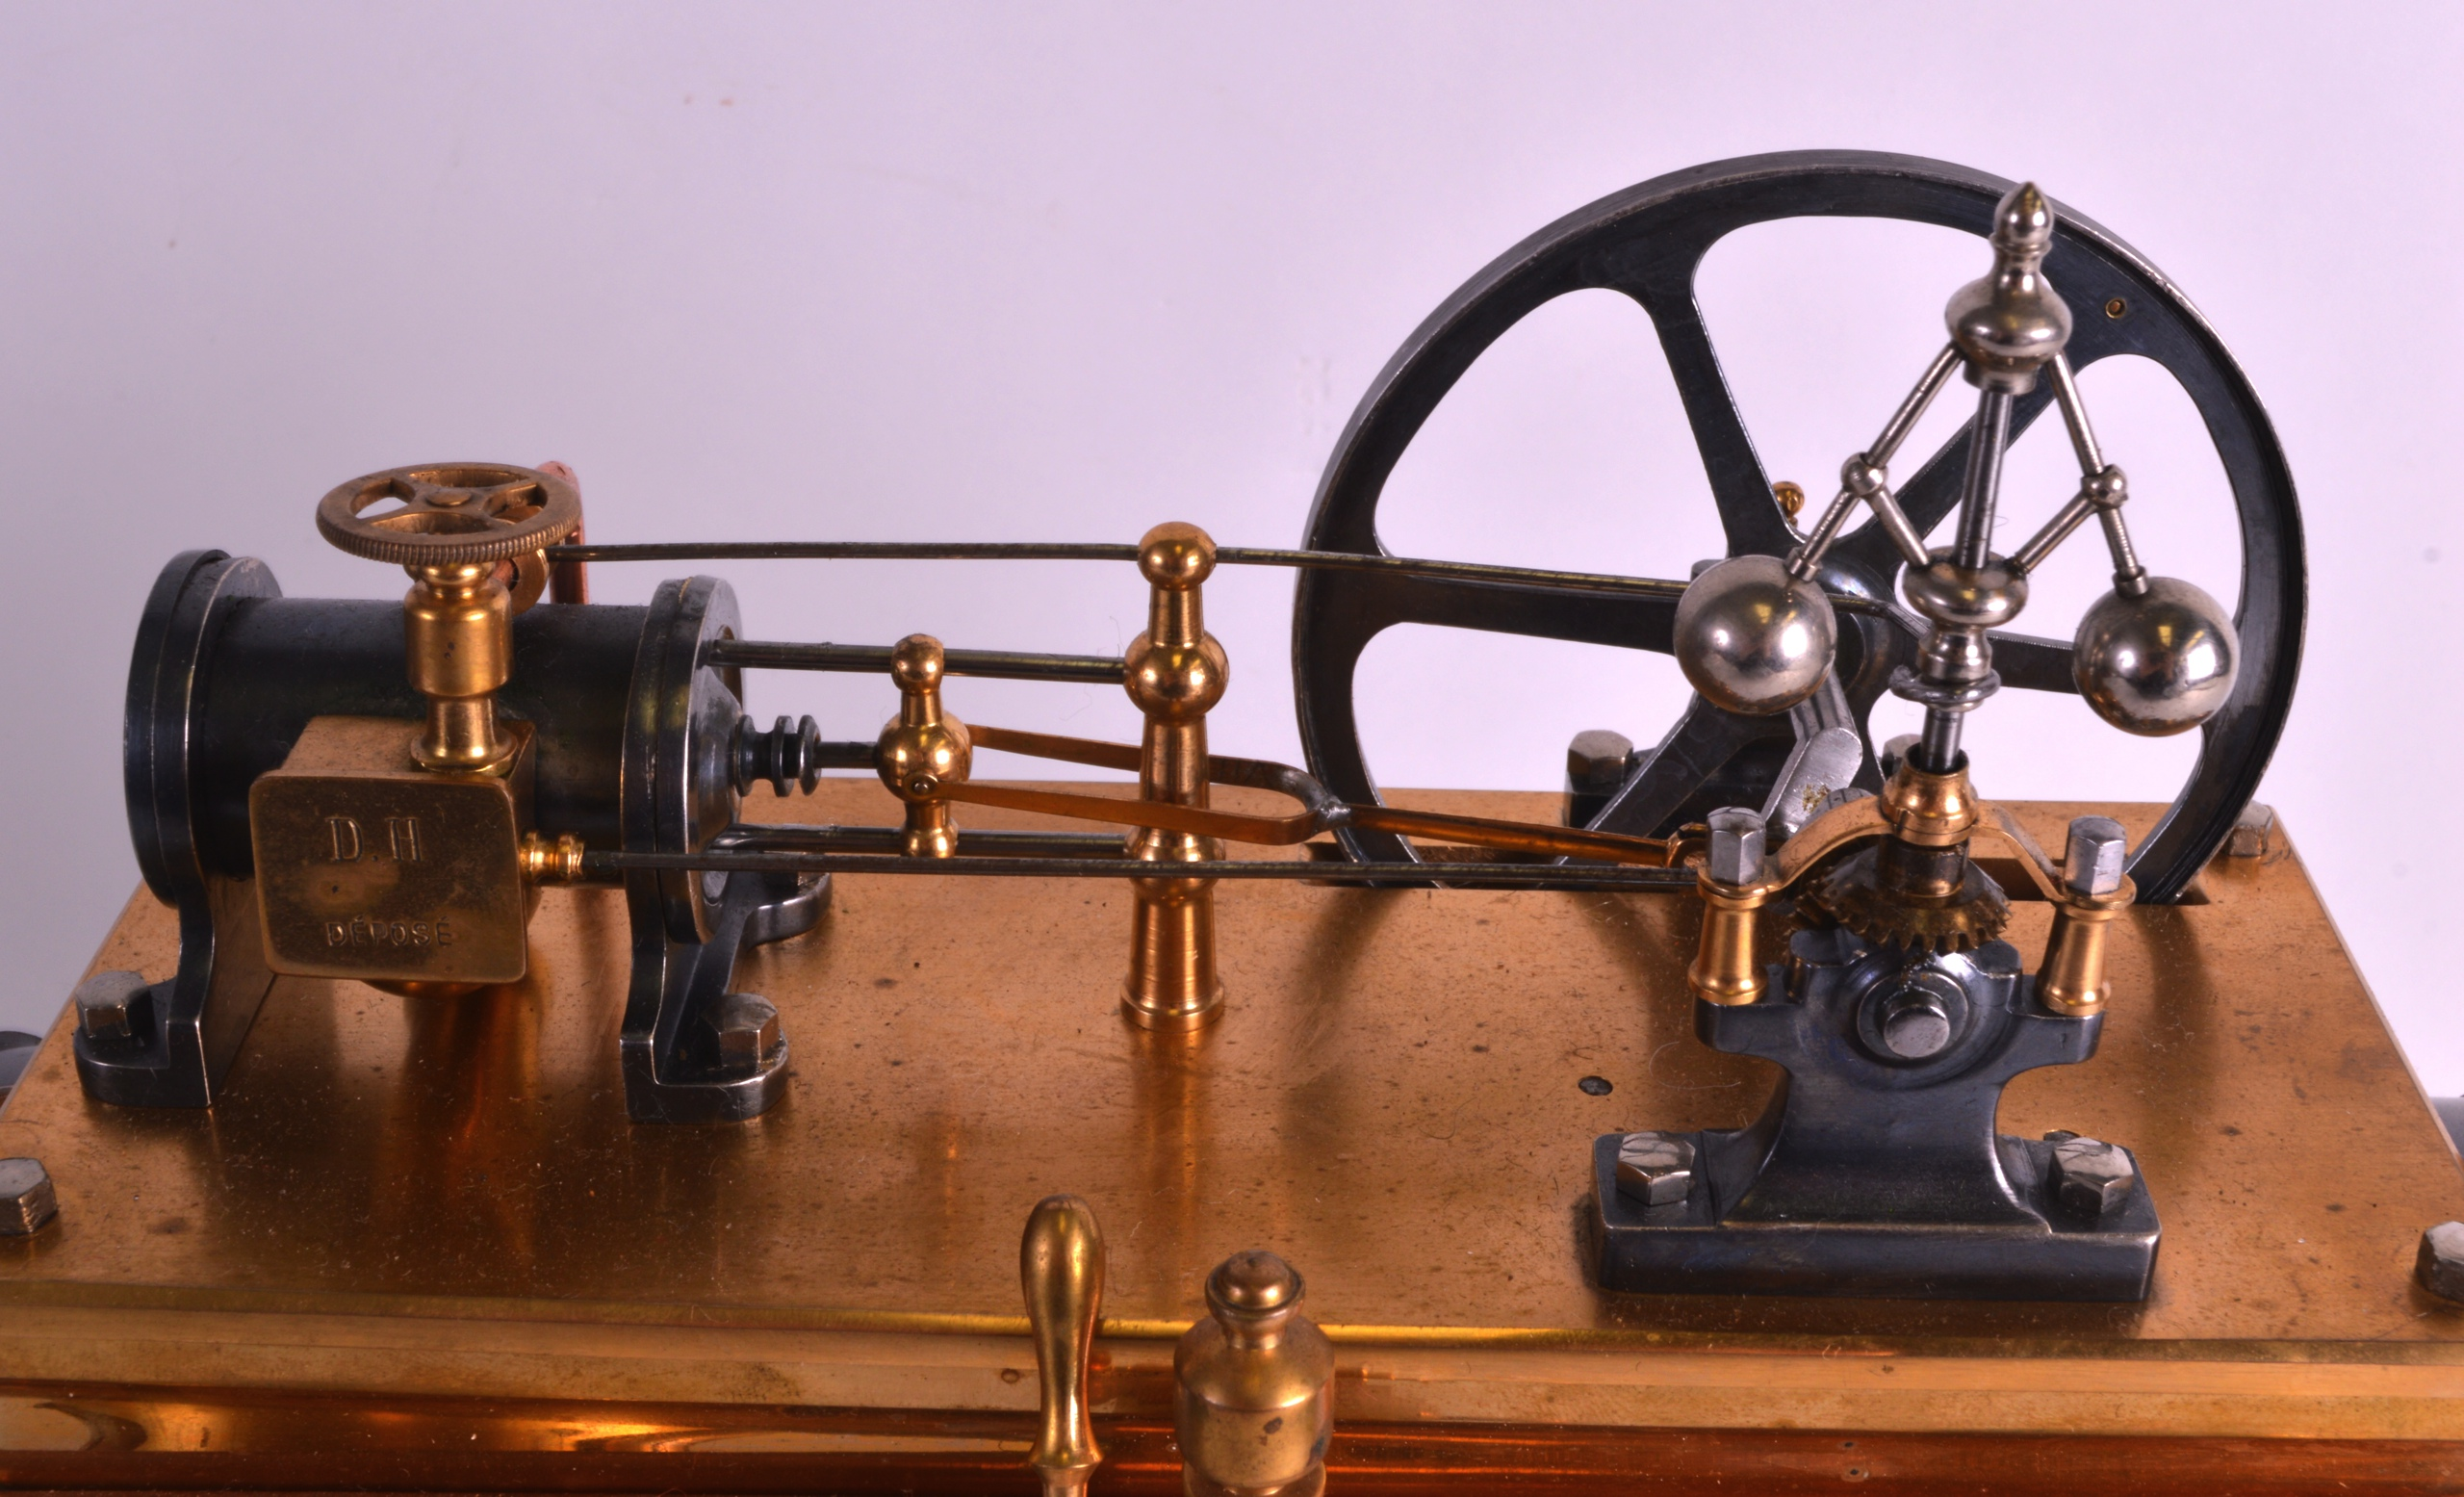 A FINE 19TH CENTURY FRENCH INDUSTRIAL BOILER ENGINE CLOCK C1880 with Roman chapters and blued - Image 5 of 7